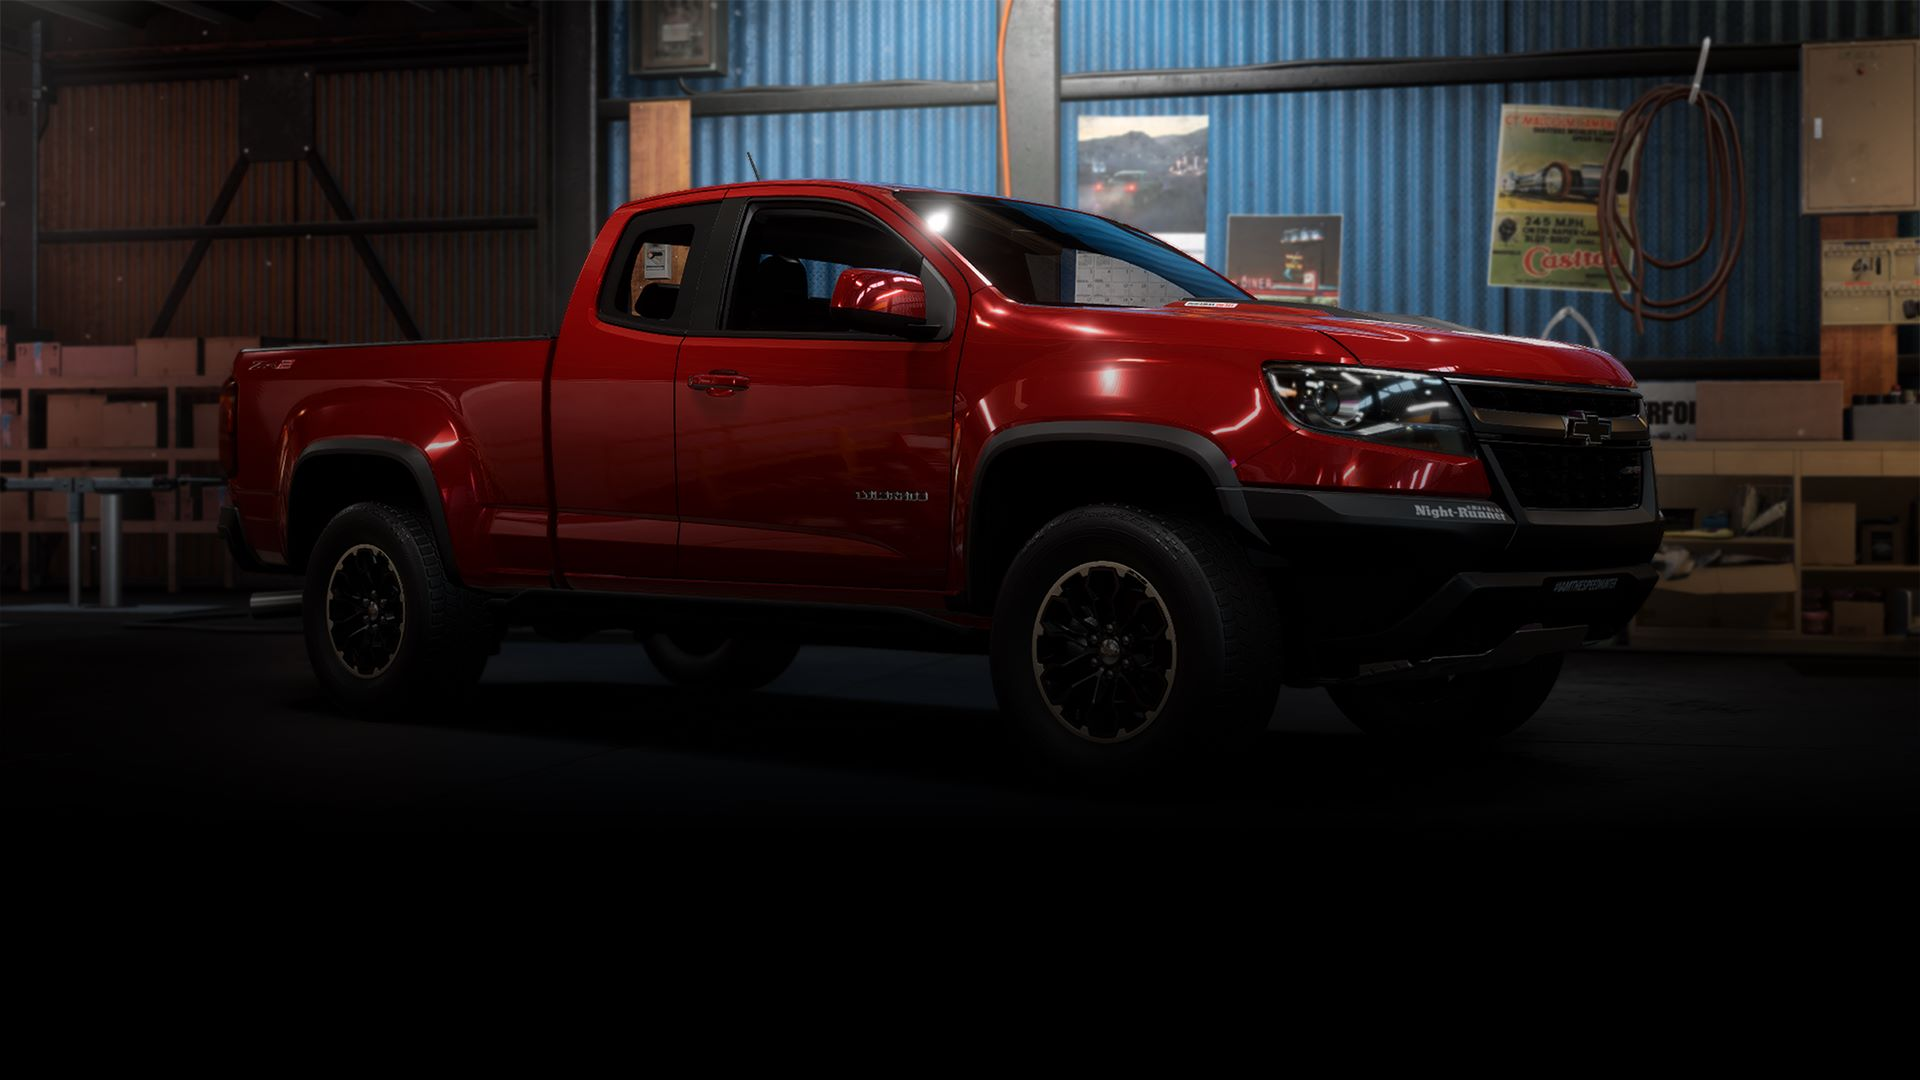 「Need for Speed™ Payback」Chevrolet Colorado ZR2